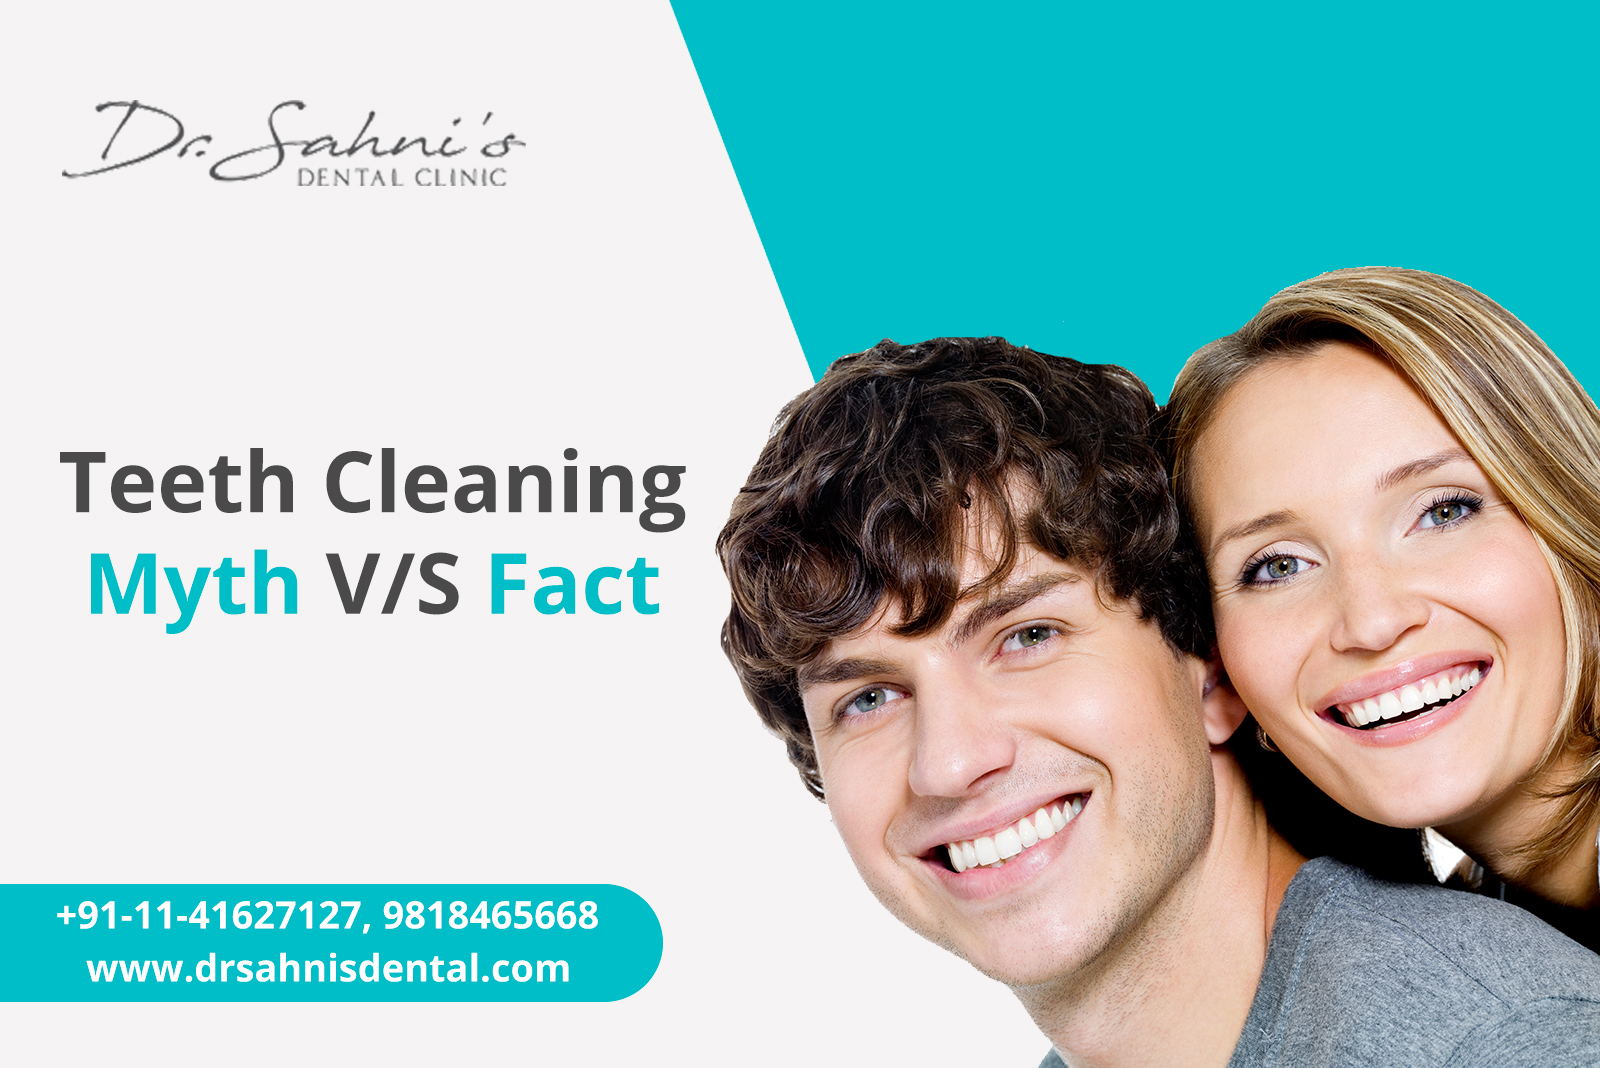 Teeth Cleaning: Myths V/S Facts